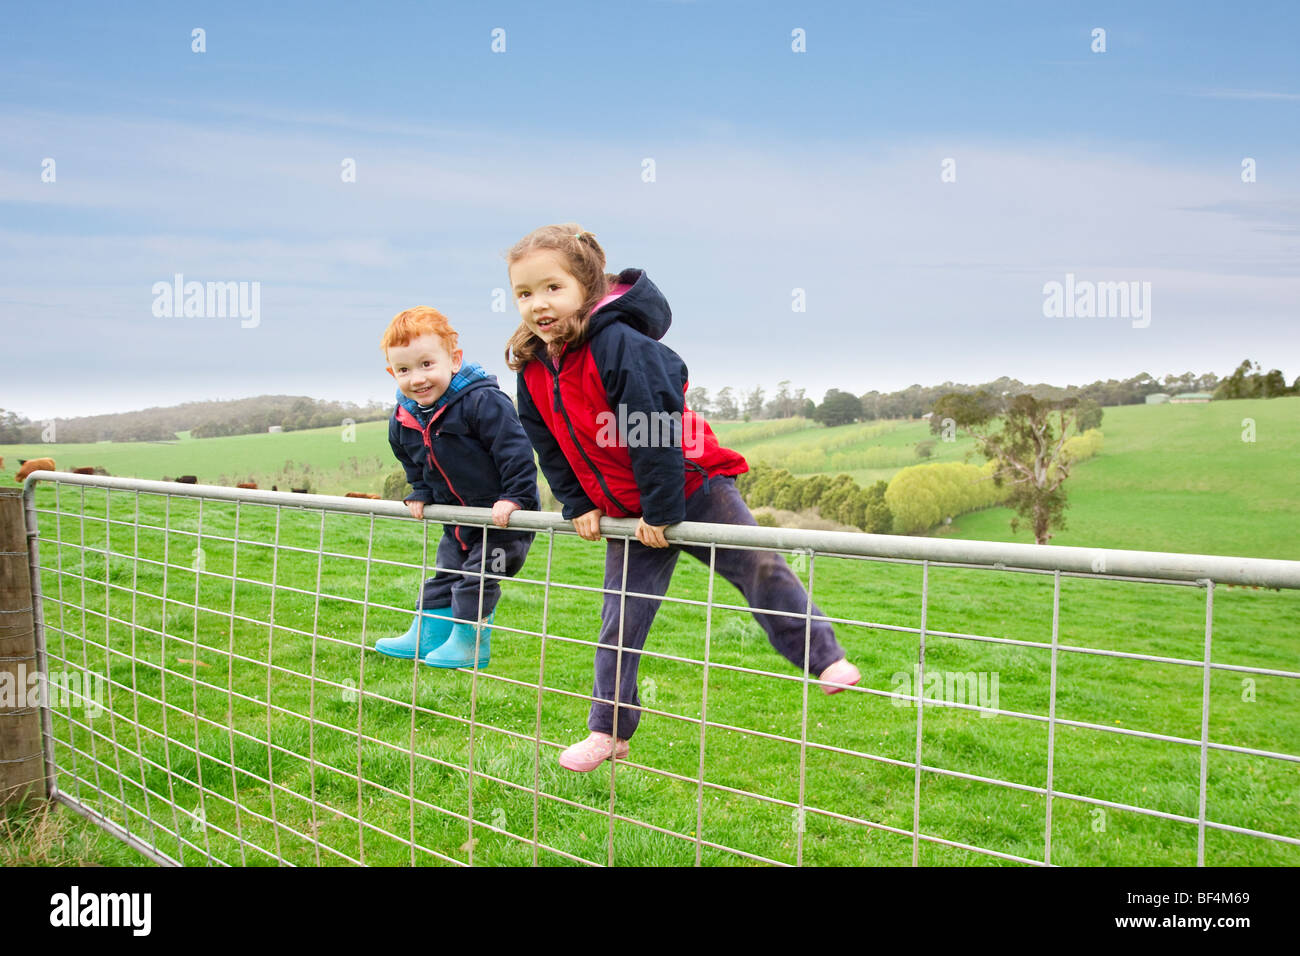 Young boy and girl on farm gate with rural farm background - Stock Image